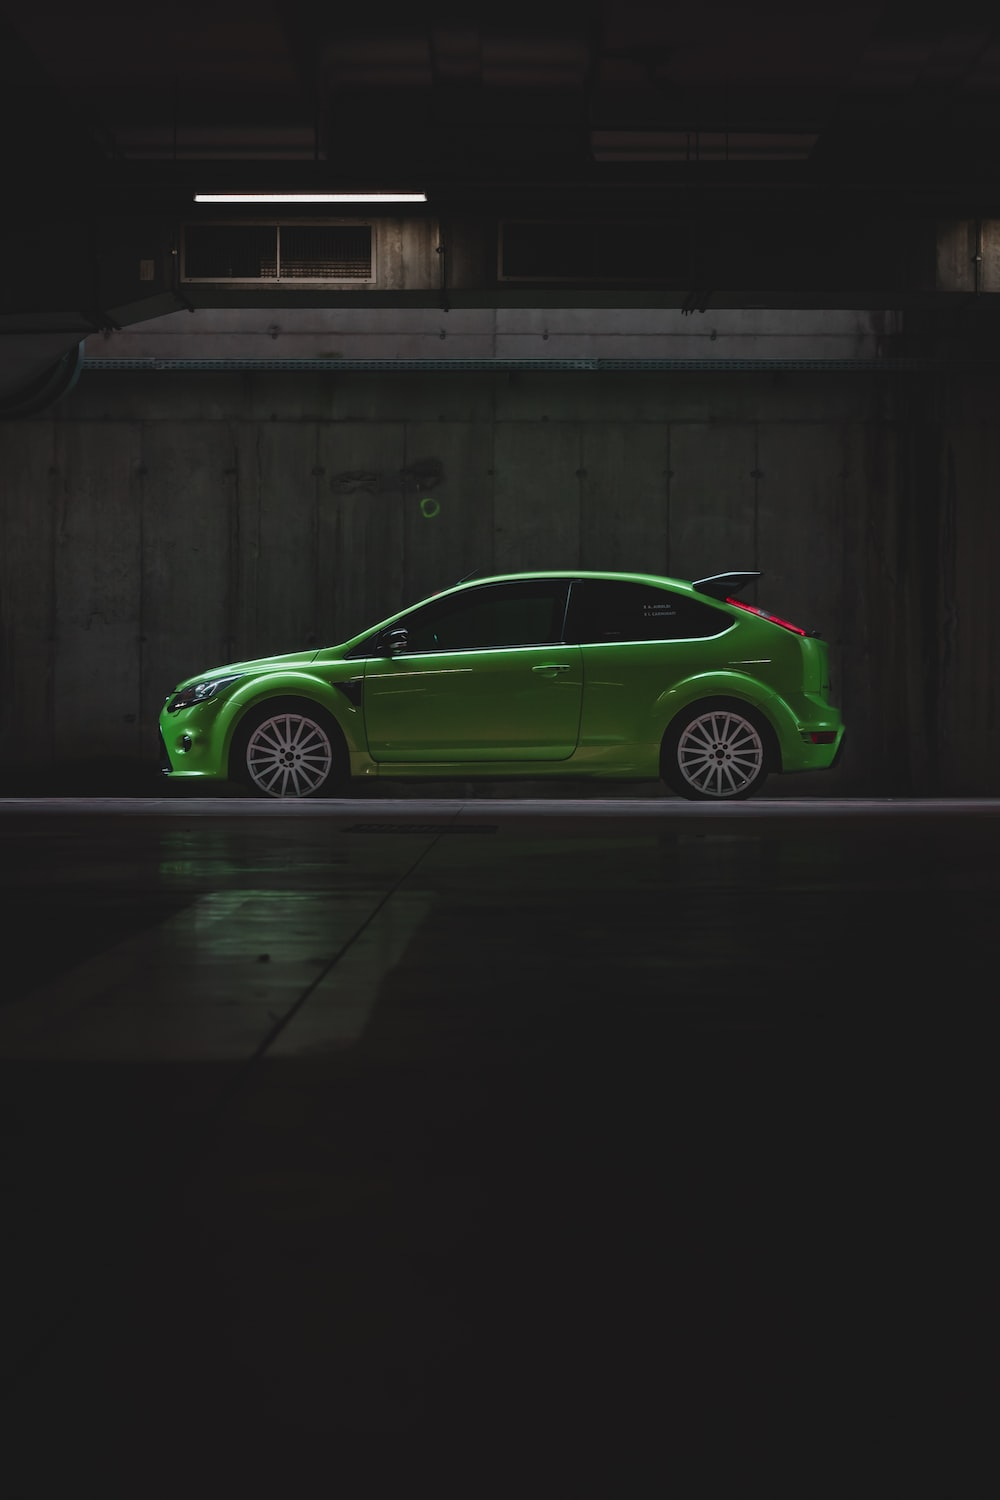 green coupe parked beside brown wooden wall